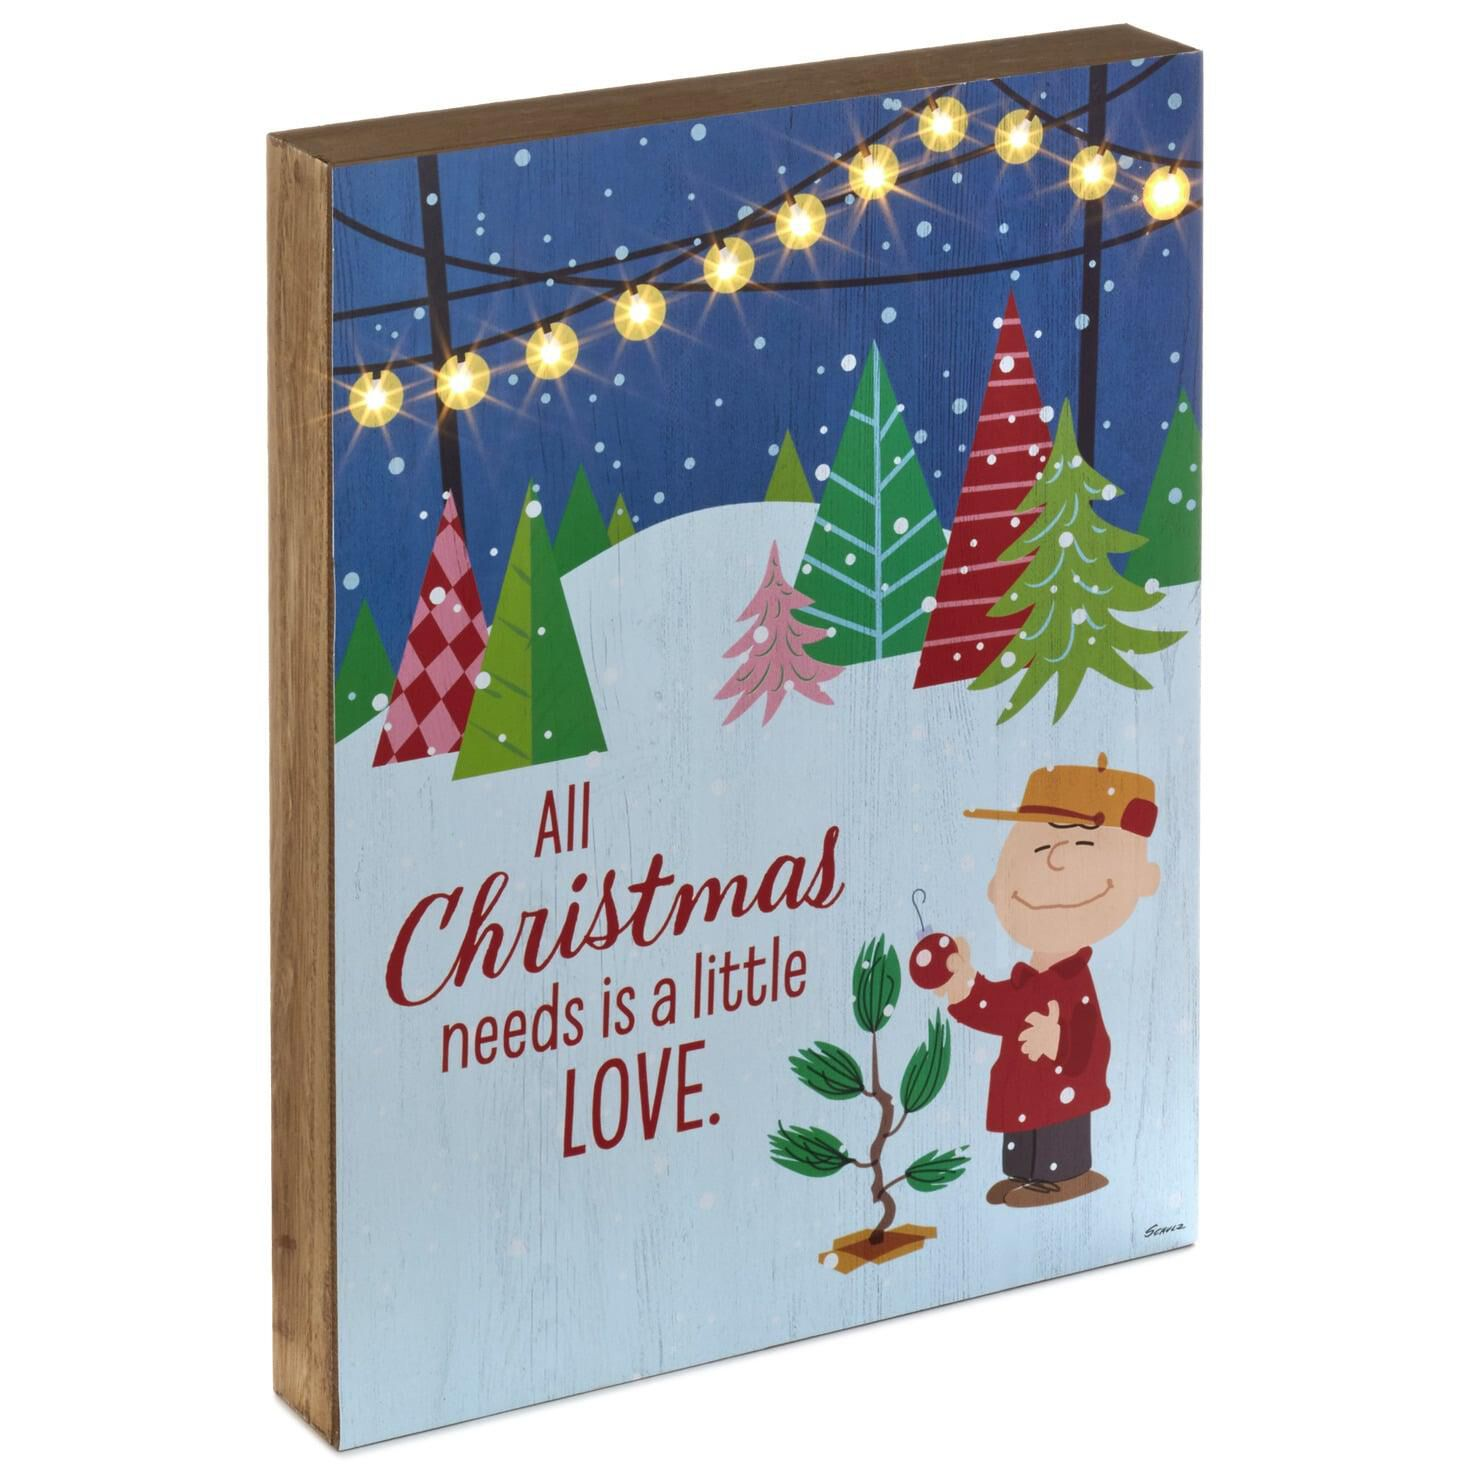 Charlie Brown Christmas Tree Quote.Peanuts Charlie Brown Christmas Needs Love Light Up Quote Sign 10x13